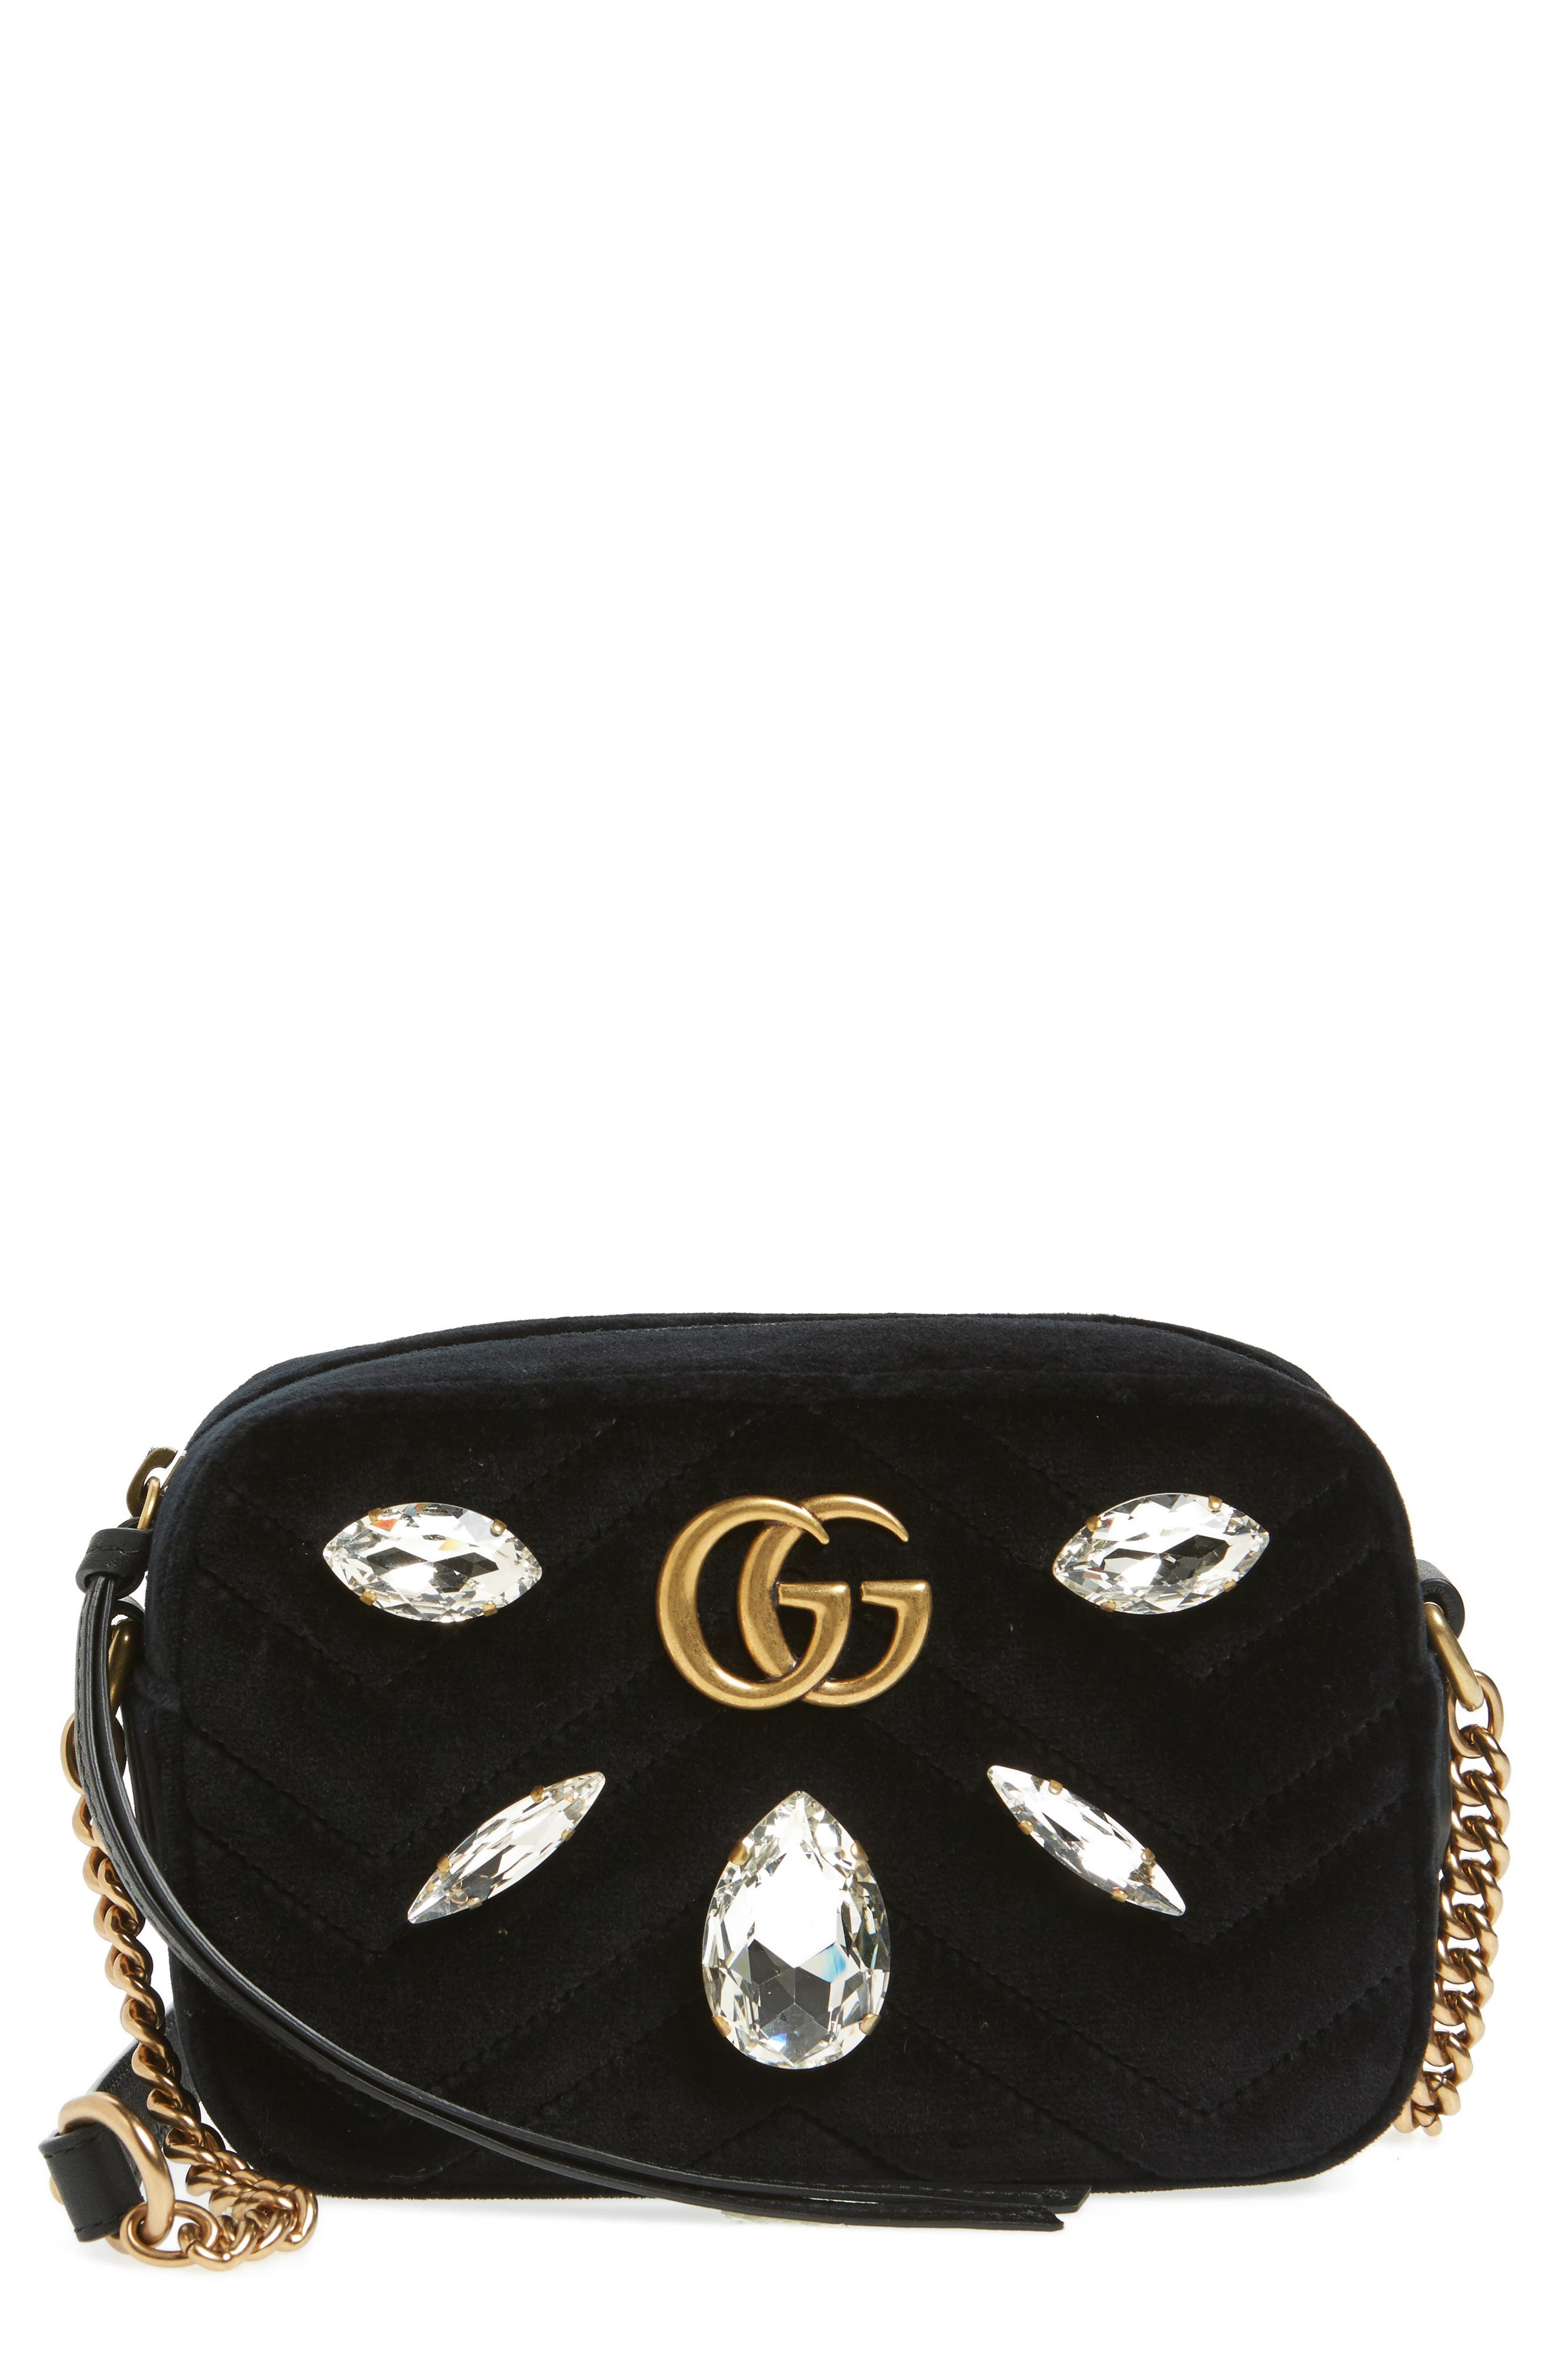 Gucci GG Marmont Crystal Matelassé Quilted Velvet Crossbody Bag